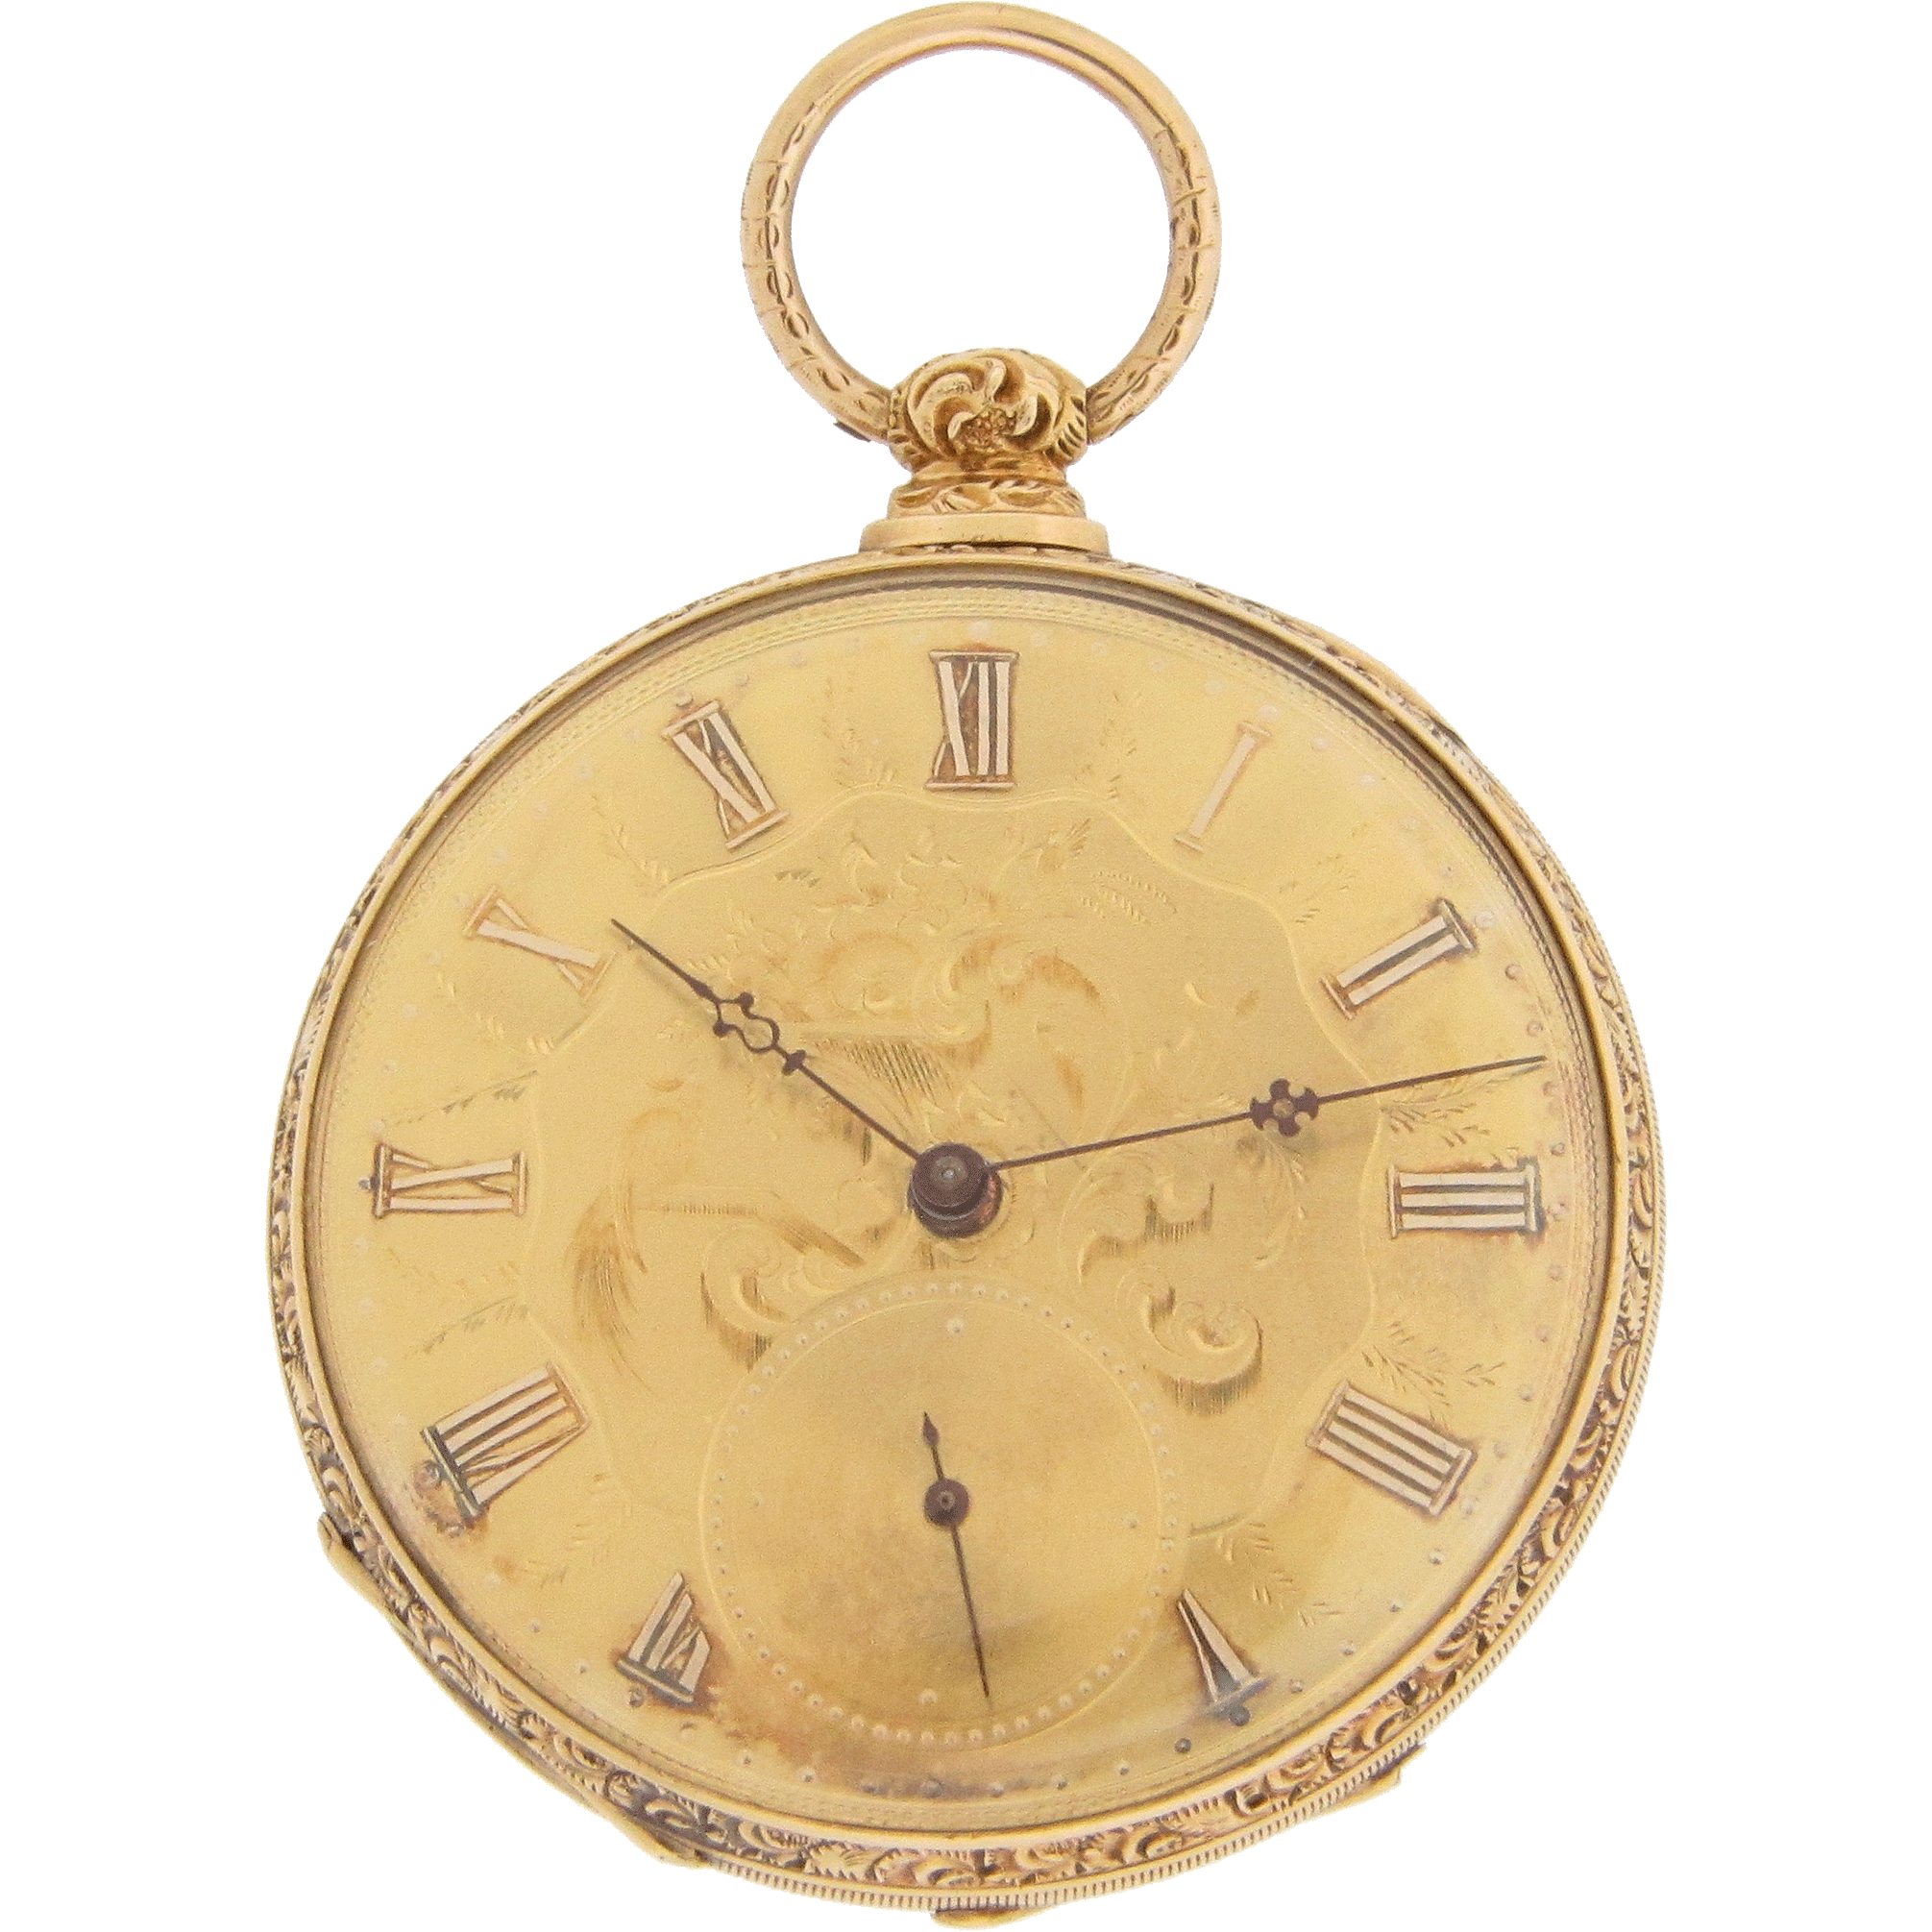 Swiss 18 Karat Yellow Gold Pocket Watch by M J Tobias